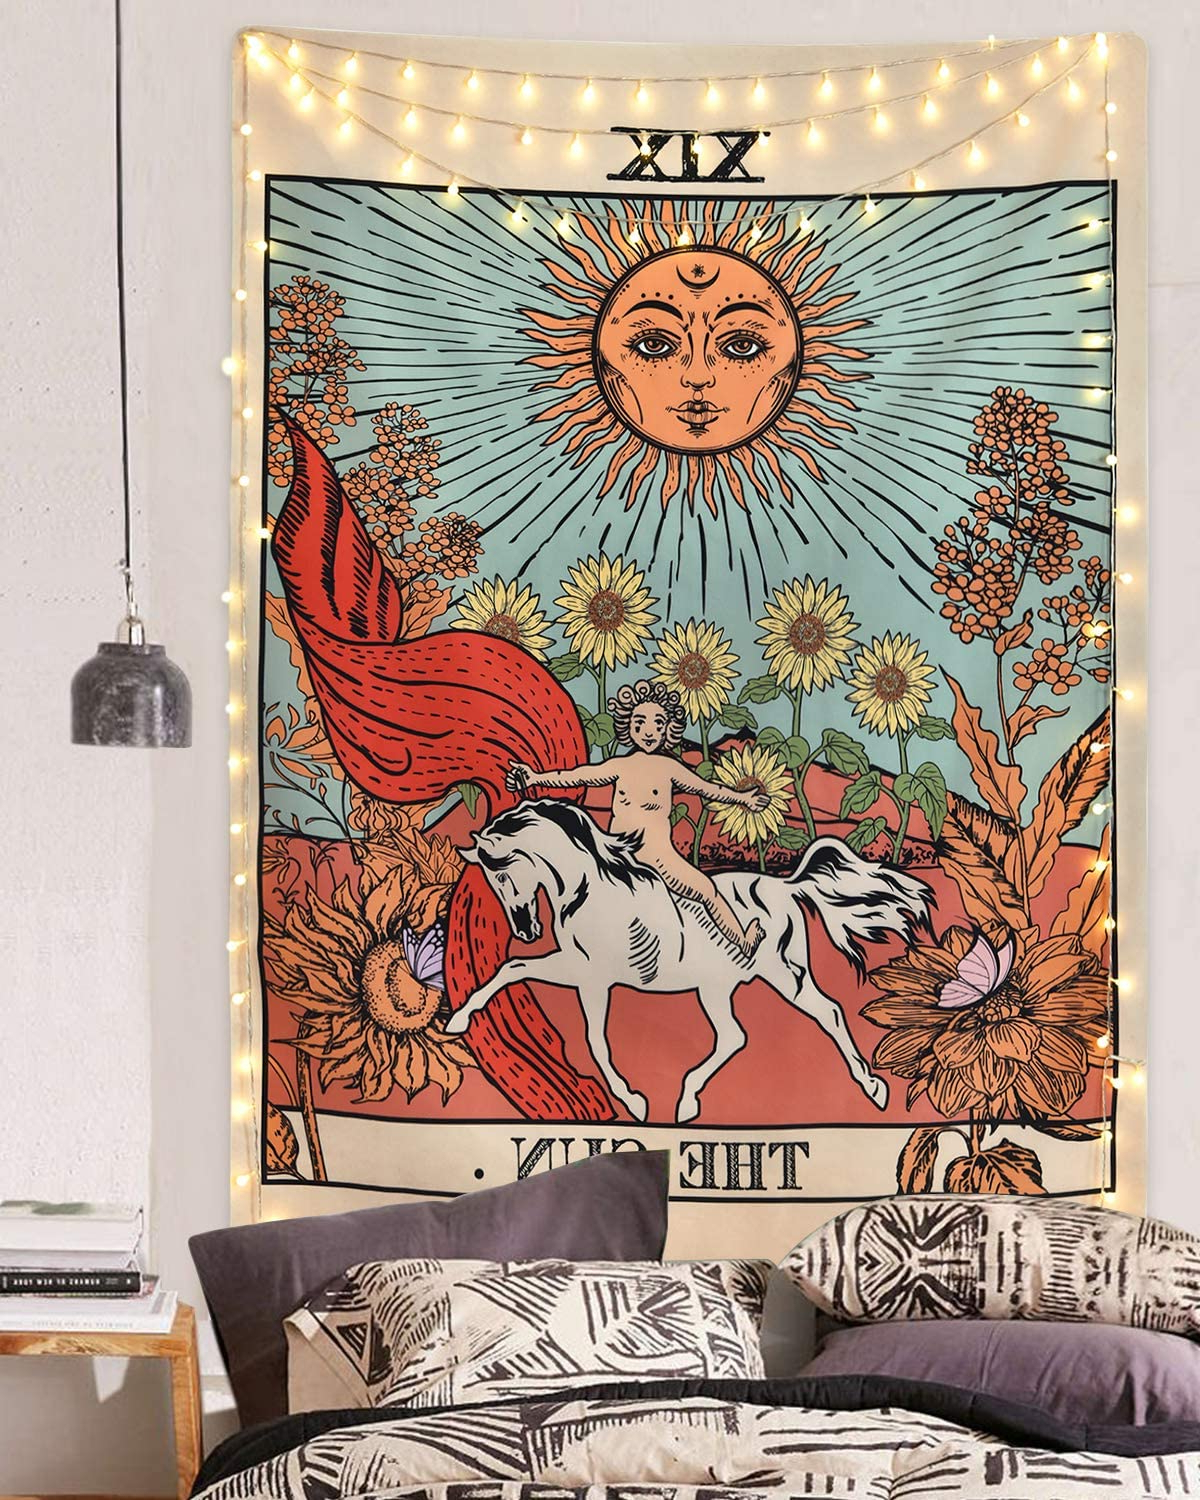 Blended Fabric Peacock European Tapestries Inside Widely Used Sevenstars Tarot Tapestry Sun Tapestry Wall Hanging Mysterious Medieval Europe Divination Tapestries For Room (70.9 X (View 18 of 20)